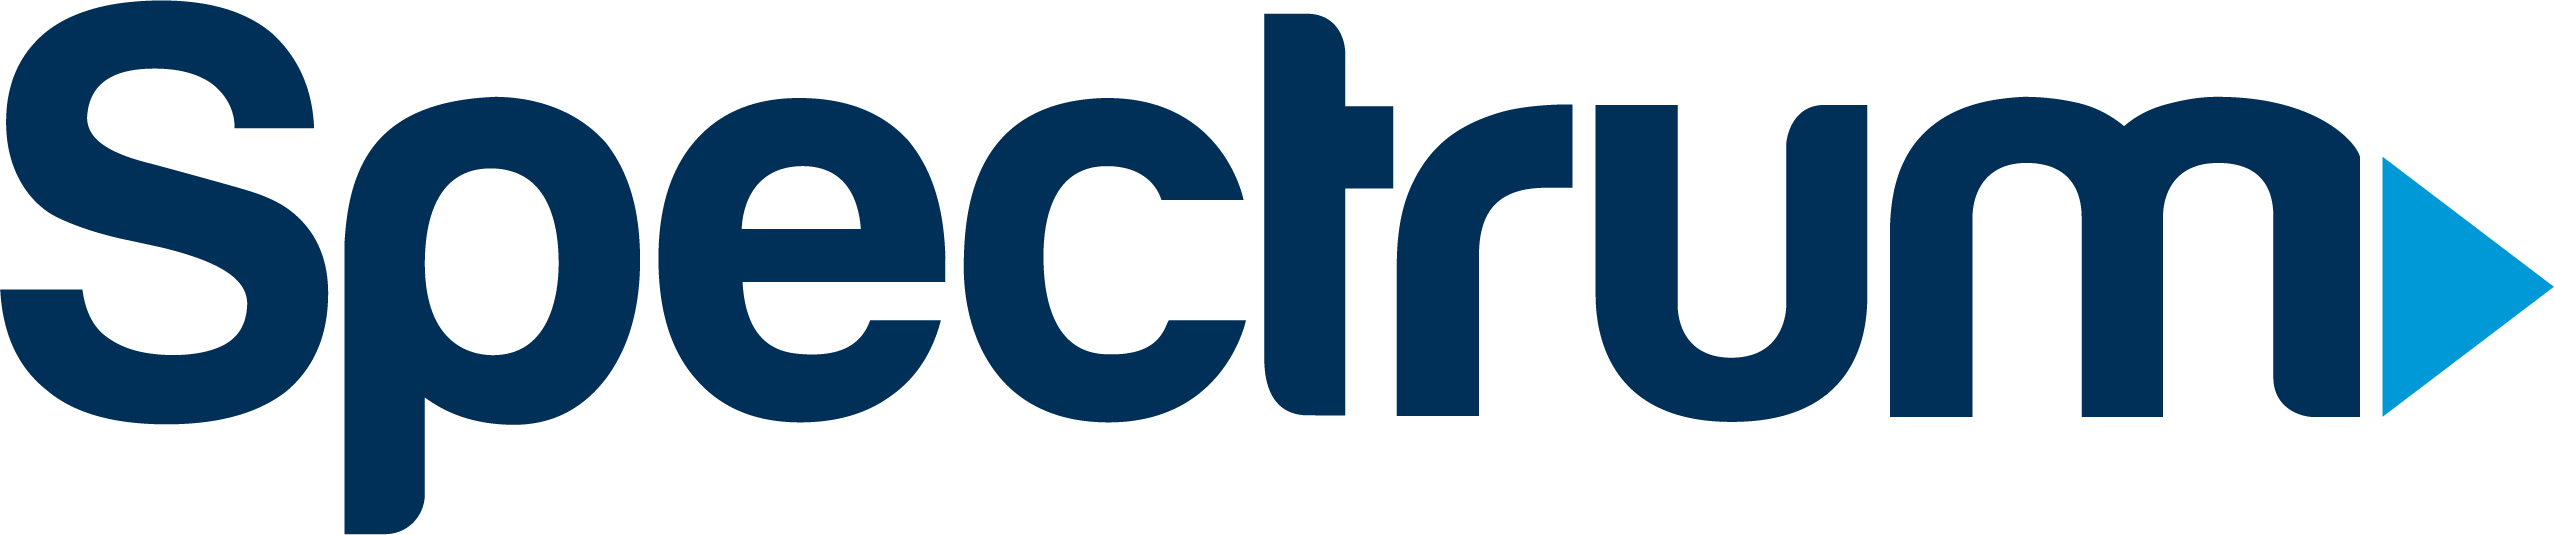 Charter Spectrum Cable Phone